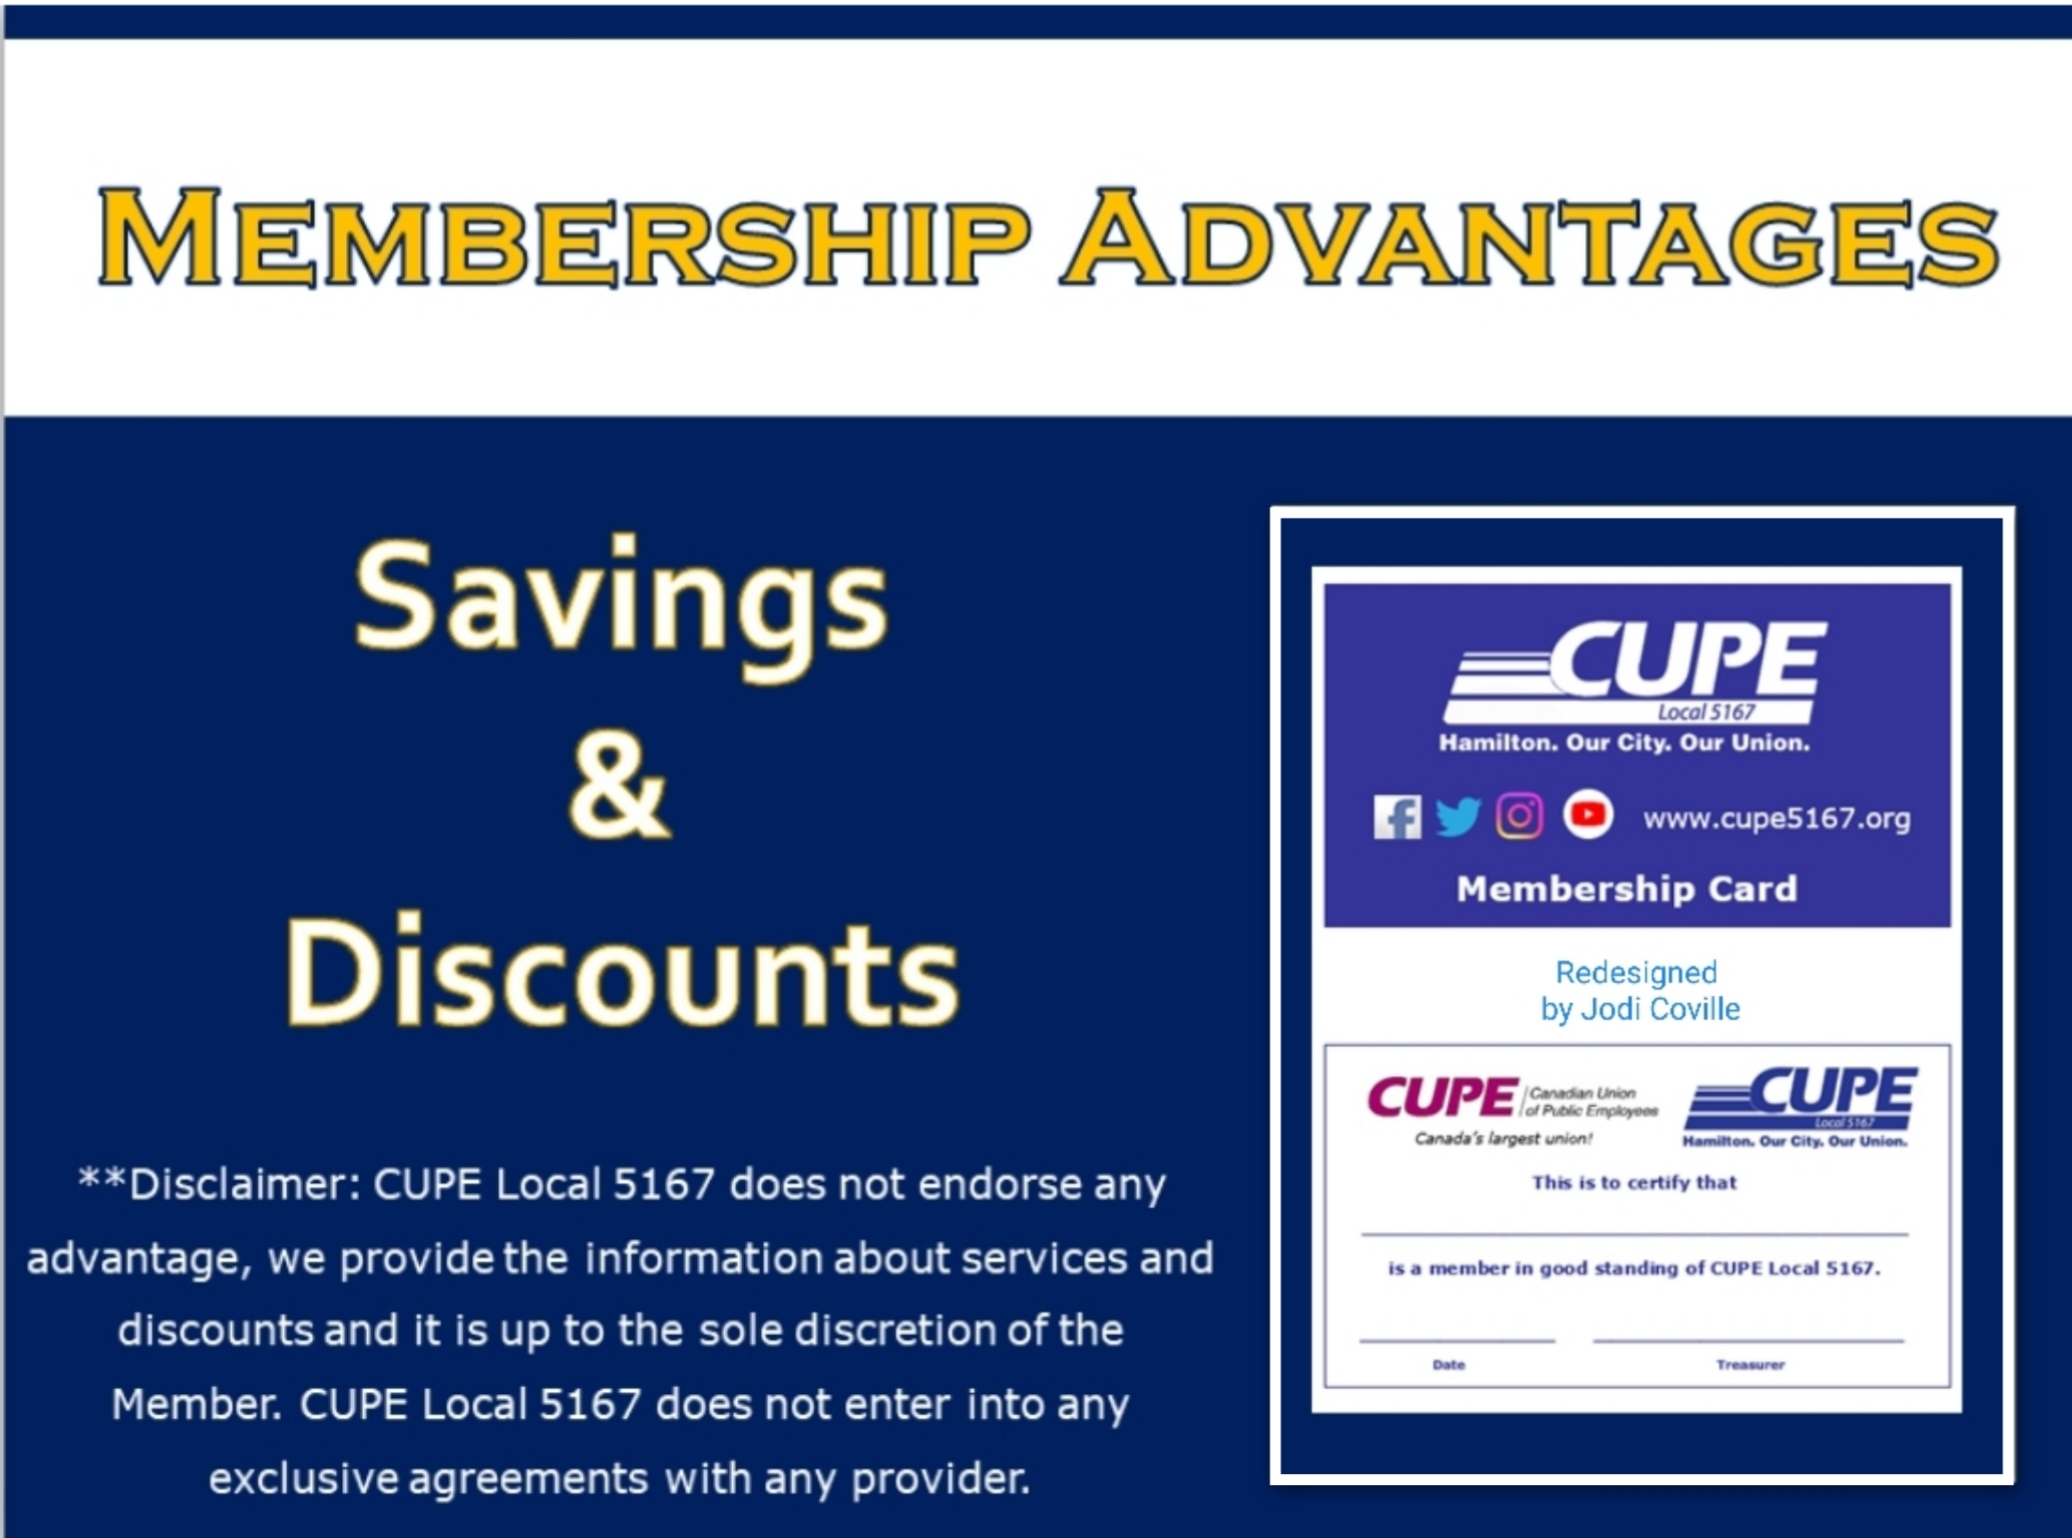 Member Advantages Cupe Local 5167